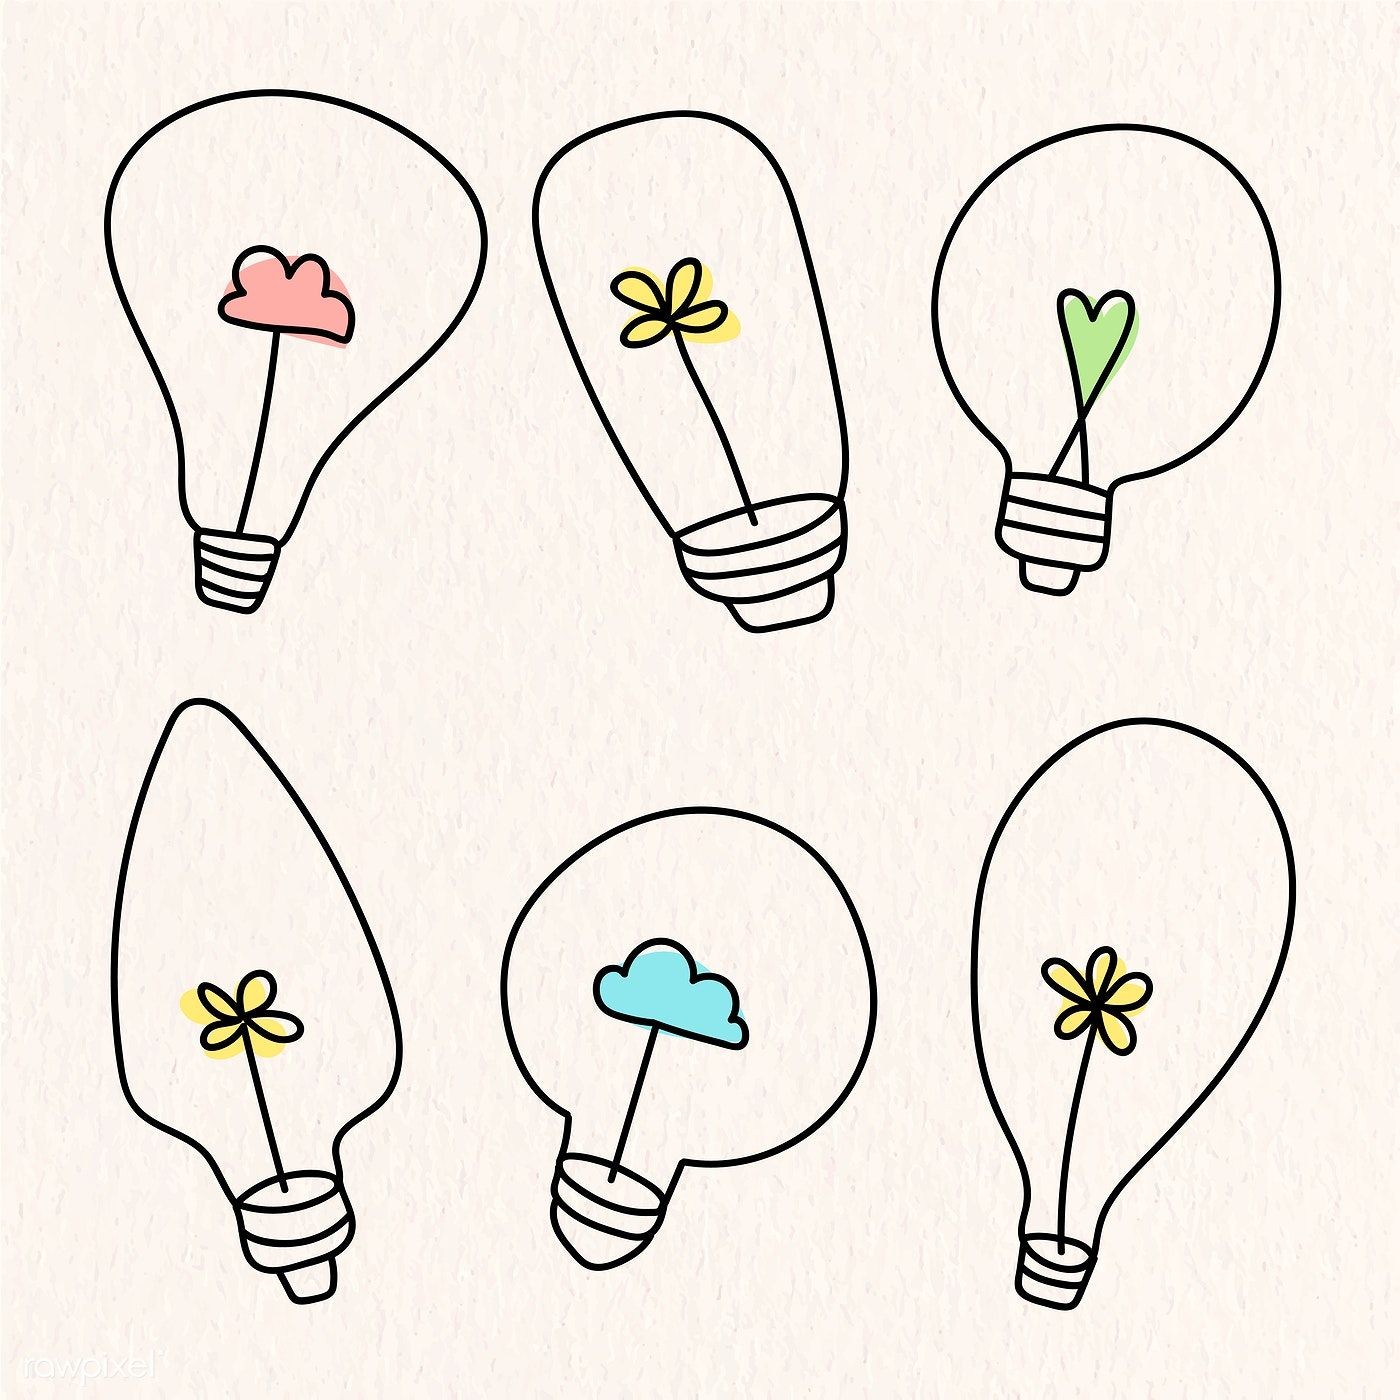 Creative Light Bulb Doodle On Beige Background Vector Collection Free Image By Rawpixel Com Marinemynt Beige Background Light Bulb Icon Free Hand Drawing